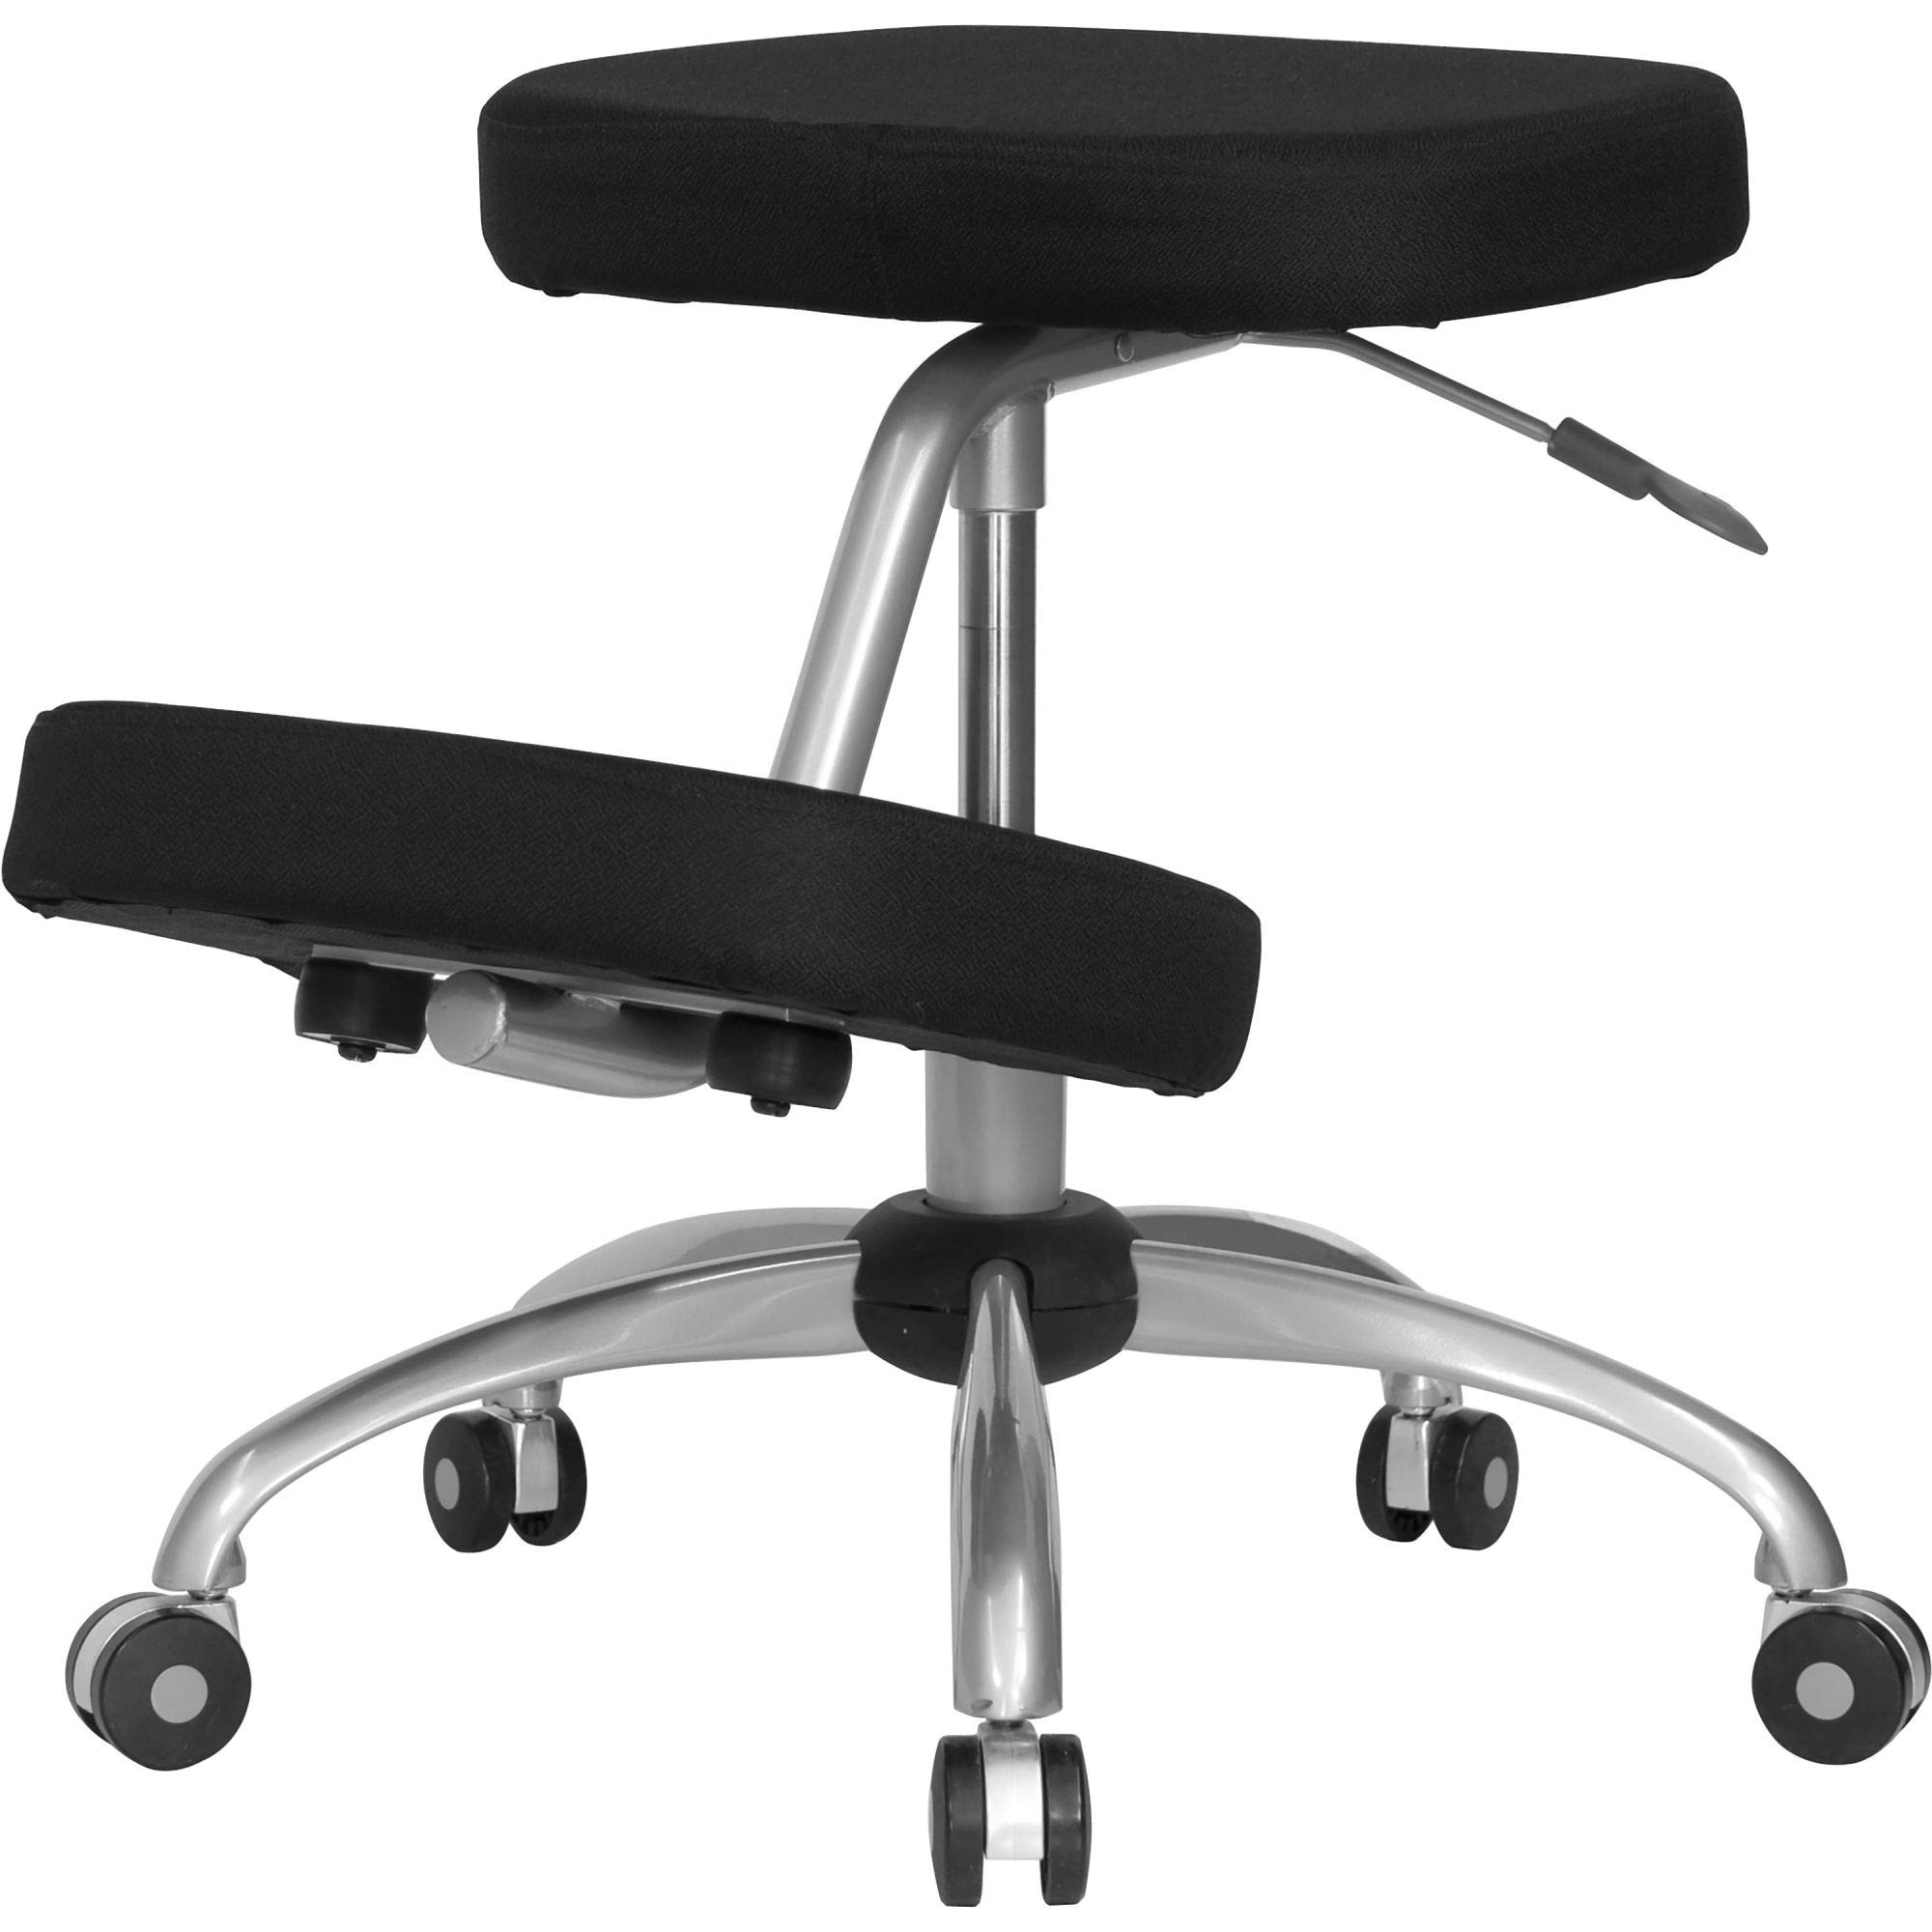 Delacora WL-1425-GG 18 Inch Wide Fabric Kneeling Chair with Pneumatic Seat Height Adjustment by Delacora